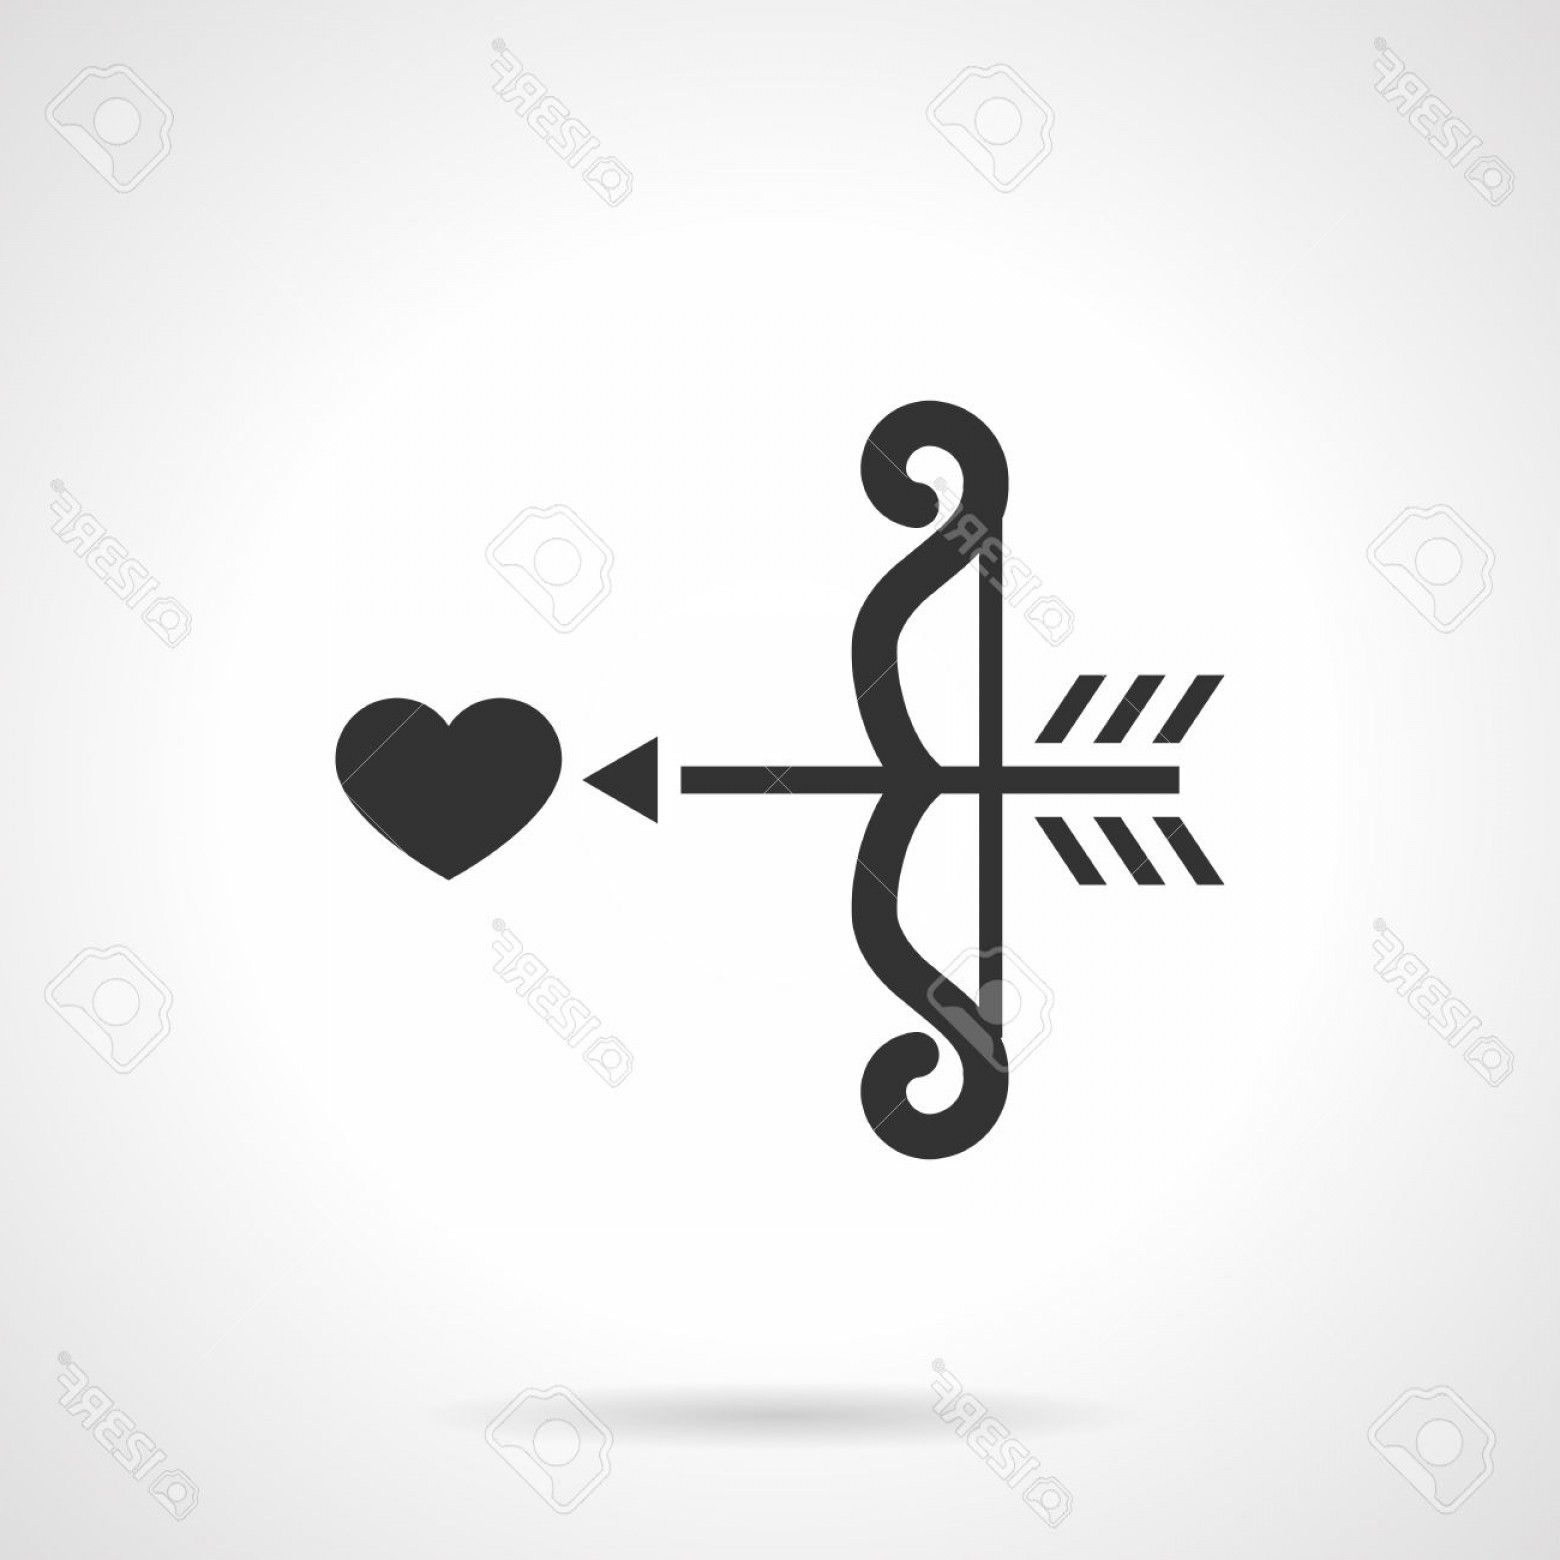 Love With Arrows Vector: Photostock Vector Curved Cupid Bow With Arrow Aiming Heart Amor Arrows Love Symbol Wedding Flat Black Style Single Vec